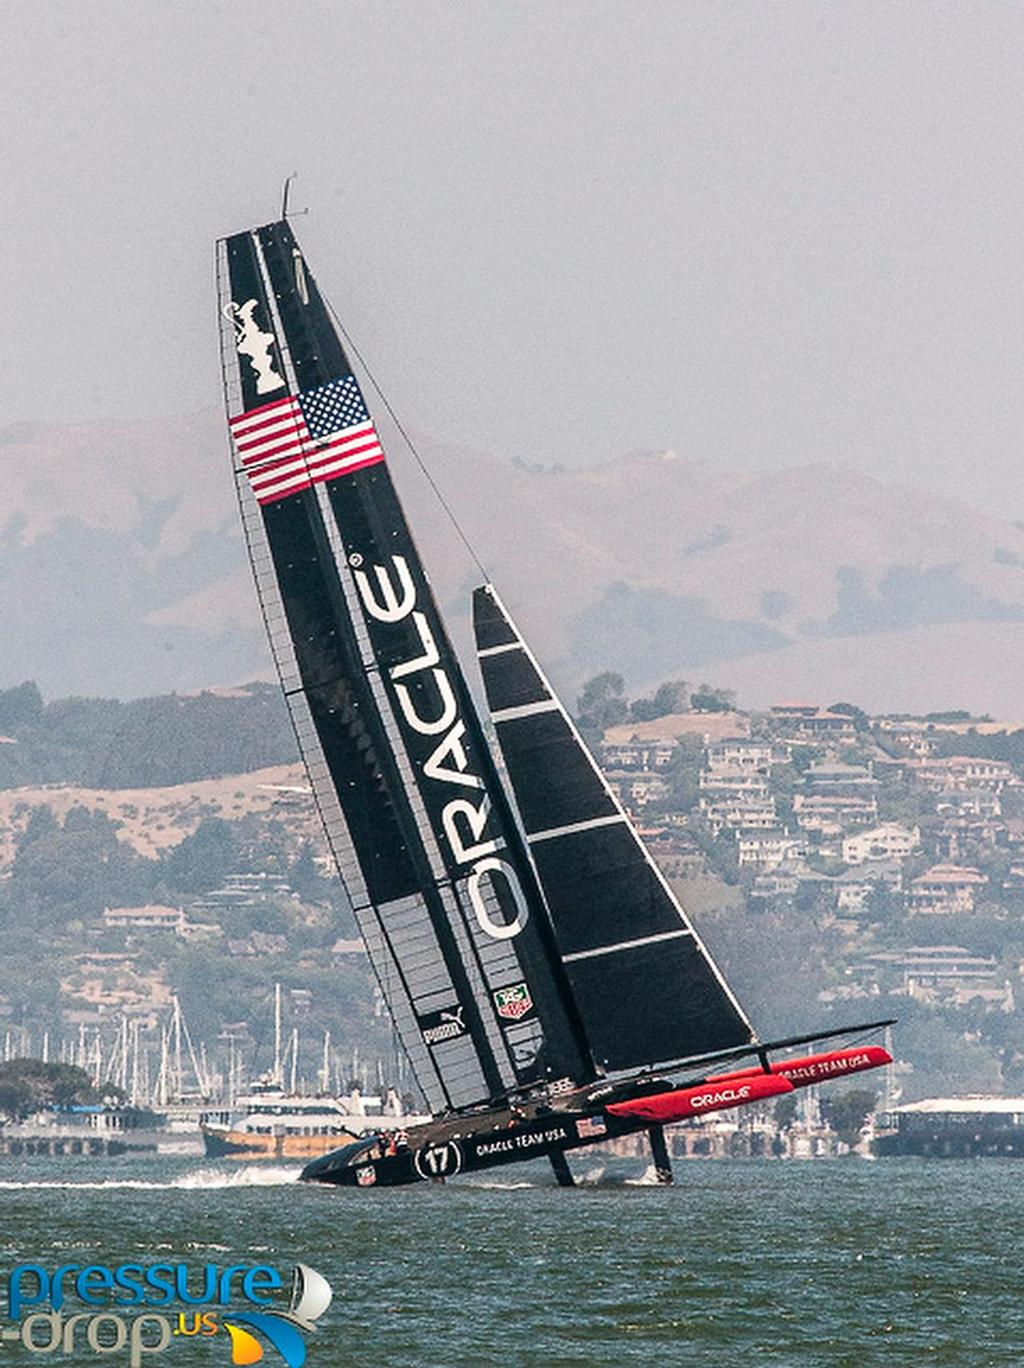 A big leap from Oracle Team USA17 - San Francisco, May 23, 2013 © Erik Simonson/ pressure-drop.us http://www.pressure-drop.us